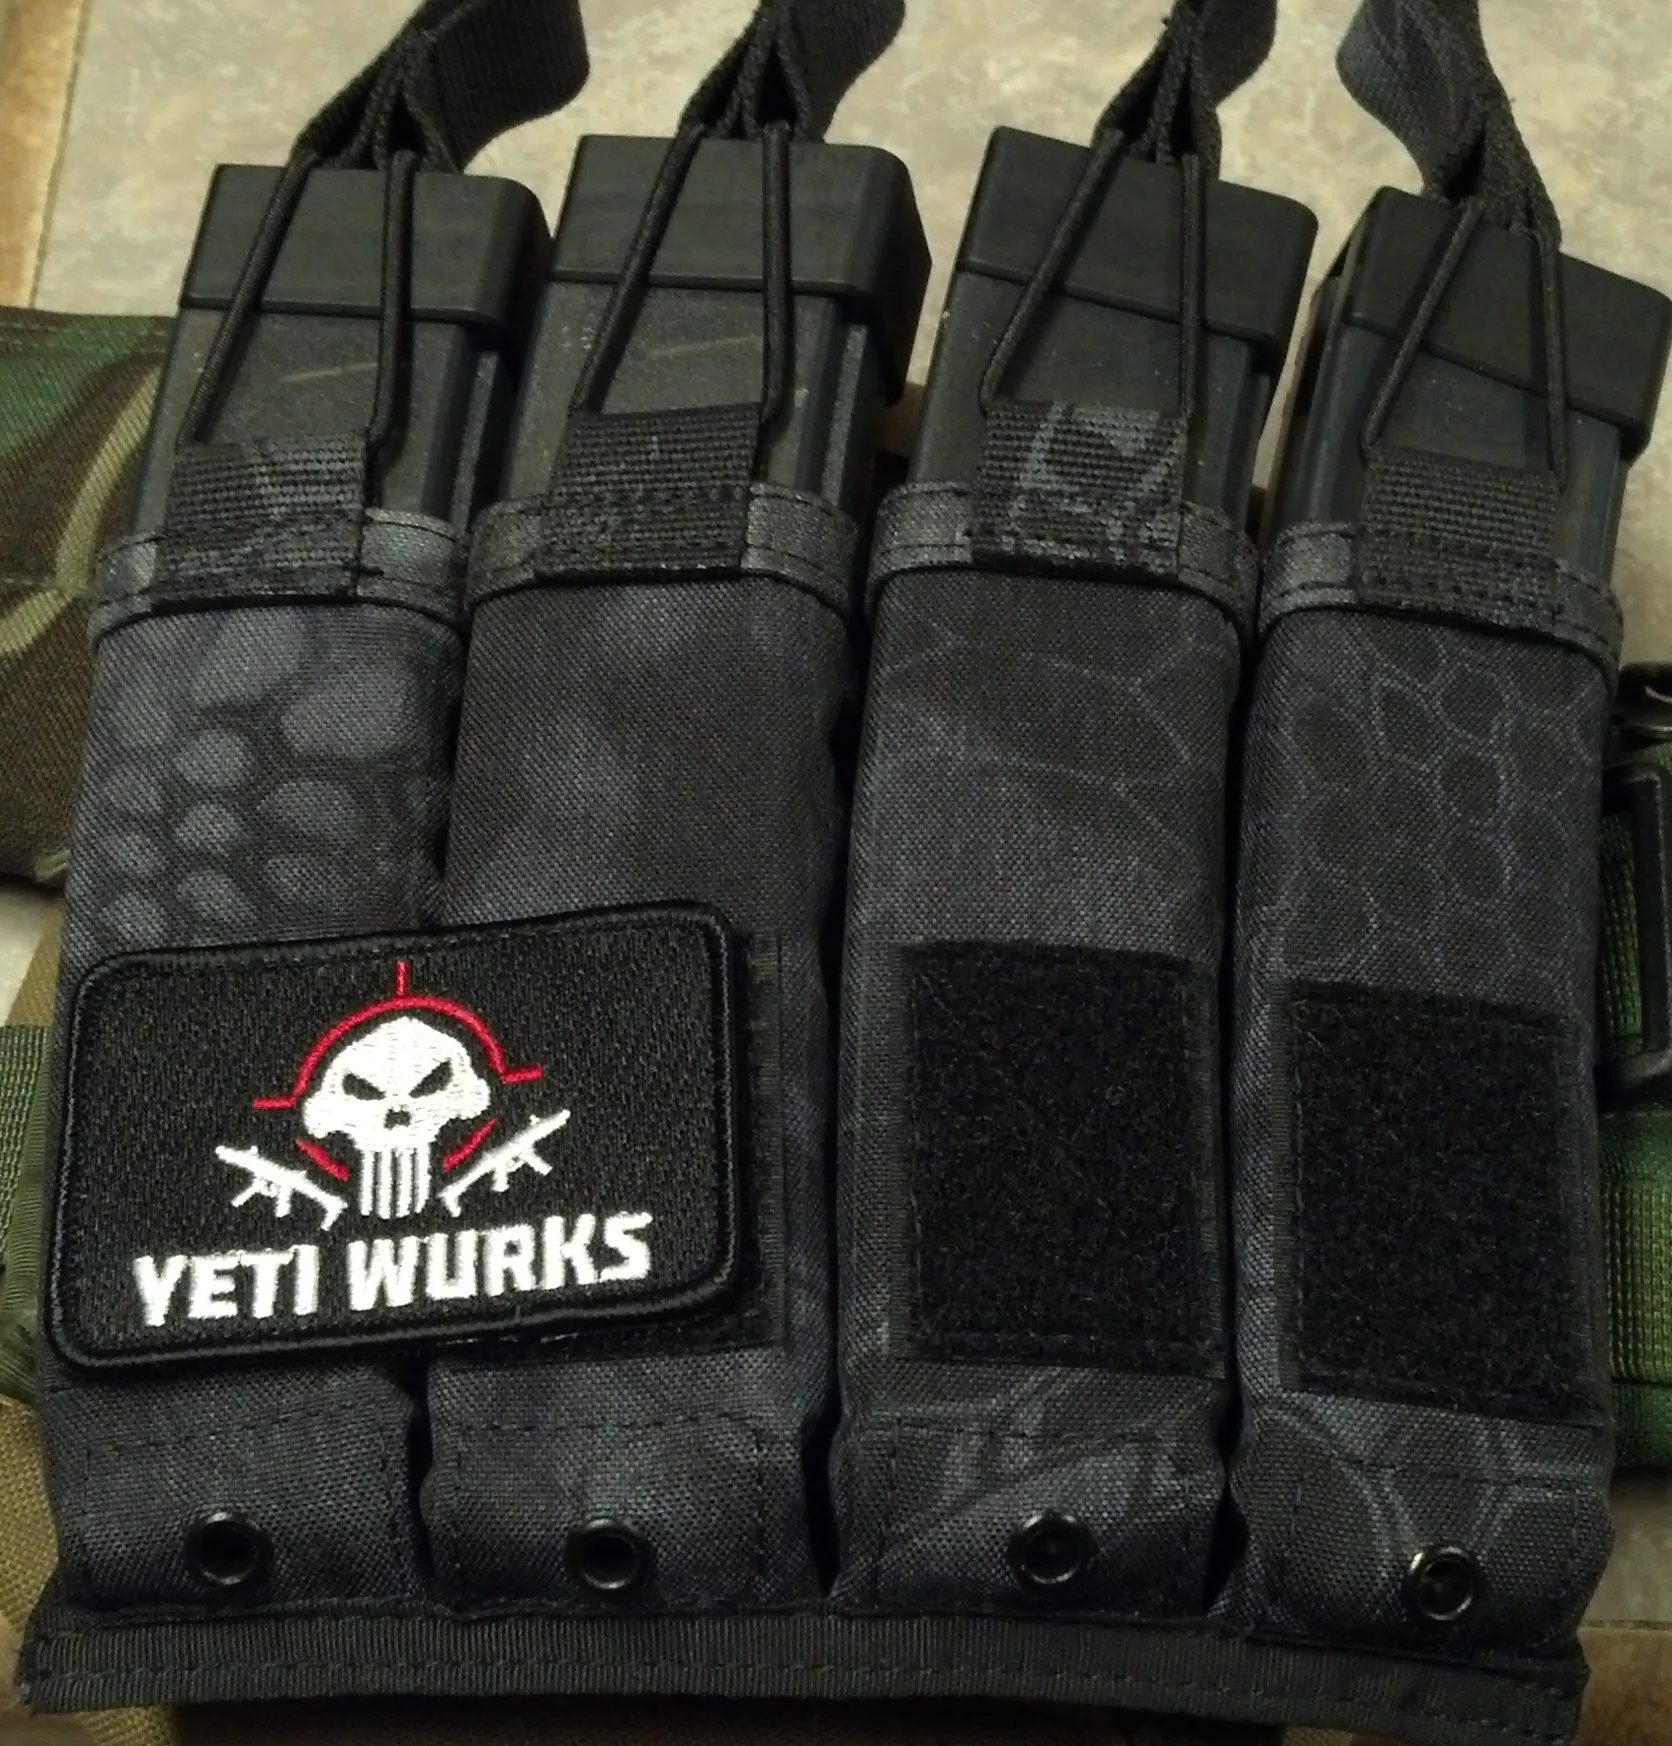 Yeti Wurks Sherpa Scorpion Magazine Pouches The